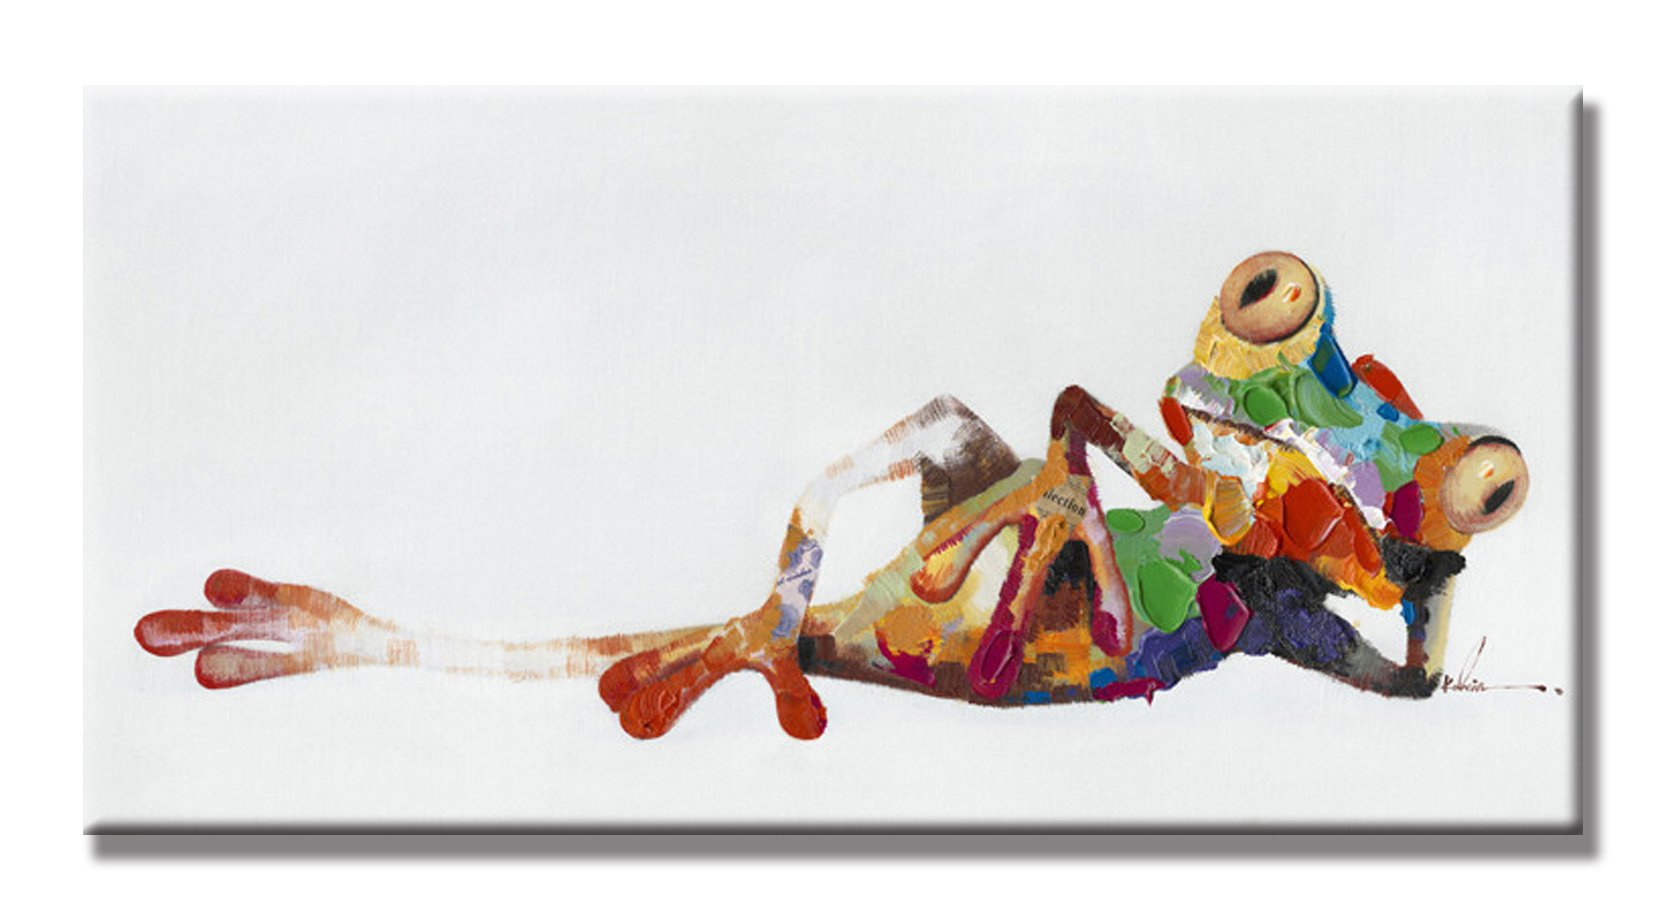 SEVEN WALL ARTS - 100% Hand Painted Oil Painting Cute Animals with Stretched Frame Artwork for Wall Decor 18 x 36 Inch (Leisure Frog)